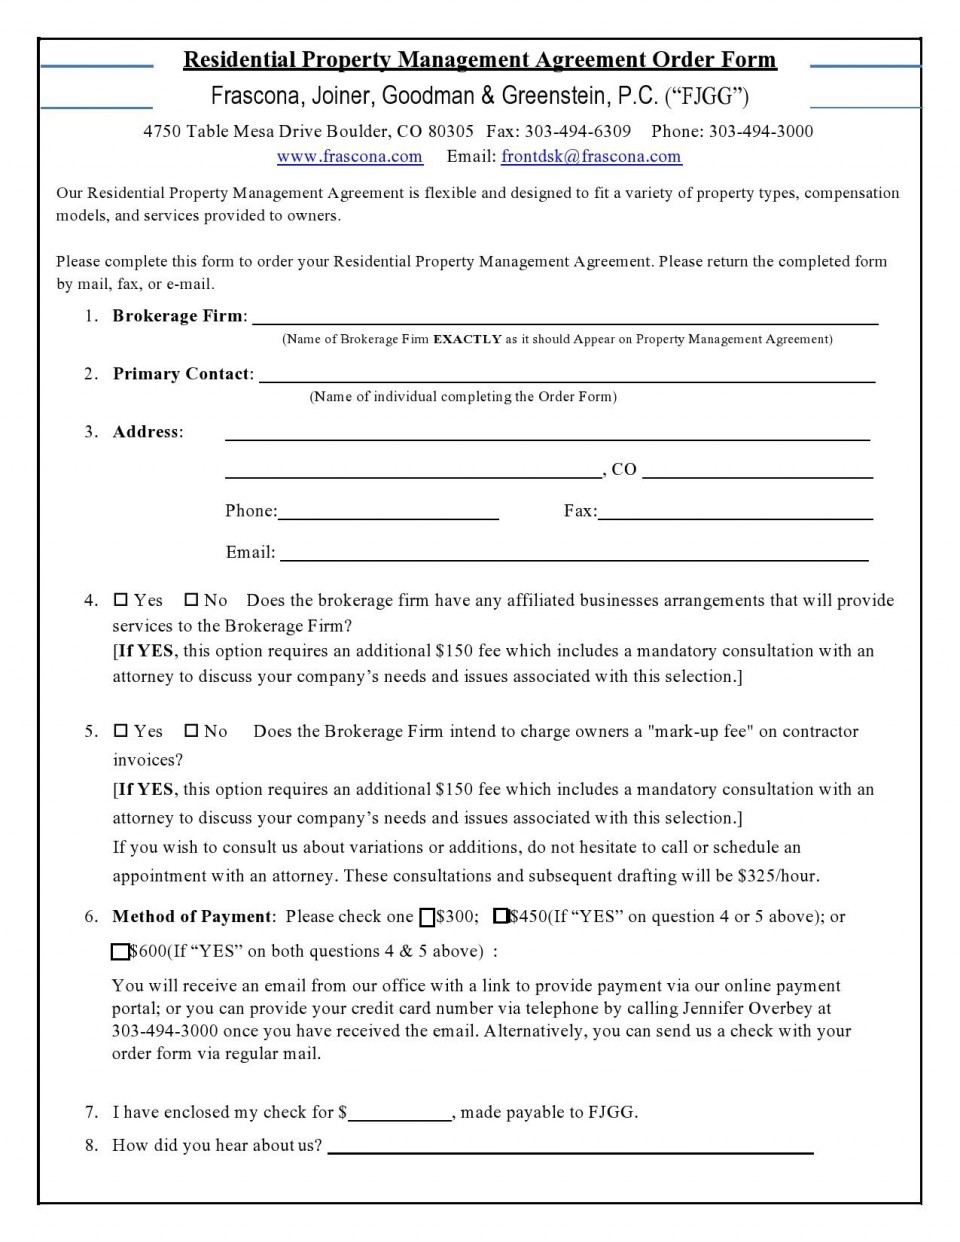 005 Breathtaking Property Management Contract Sample High Definition  Agreement Template Pdf Company Free Uk960